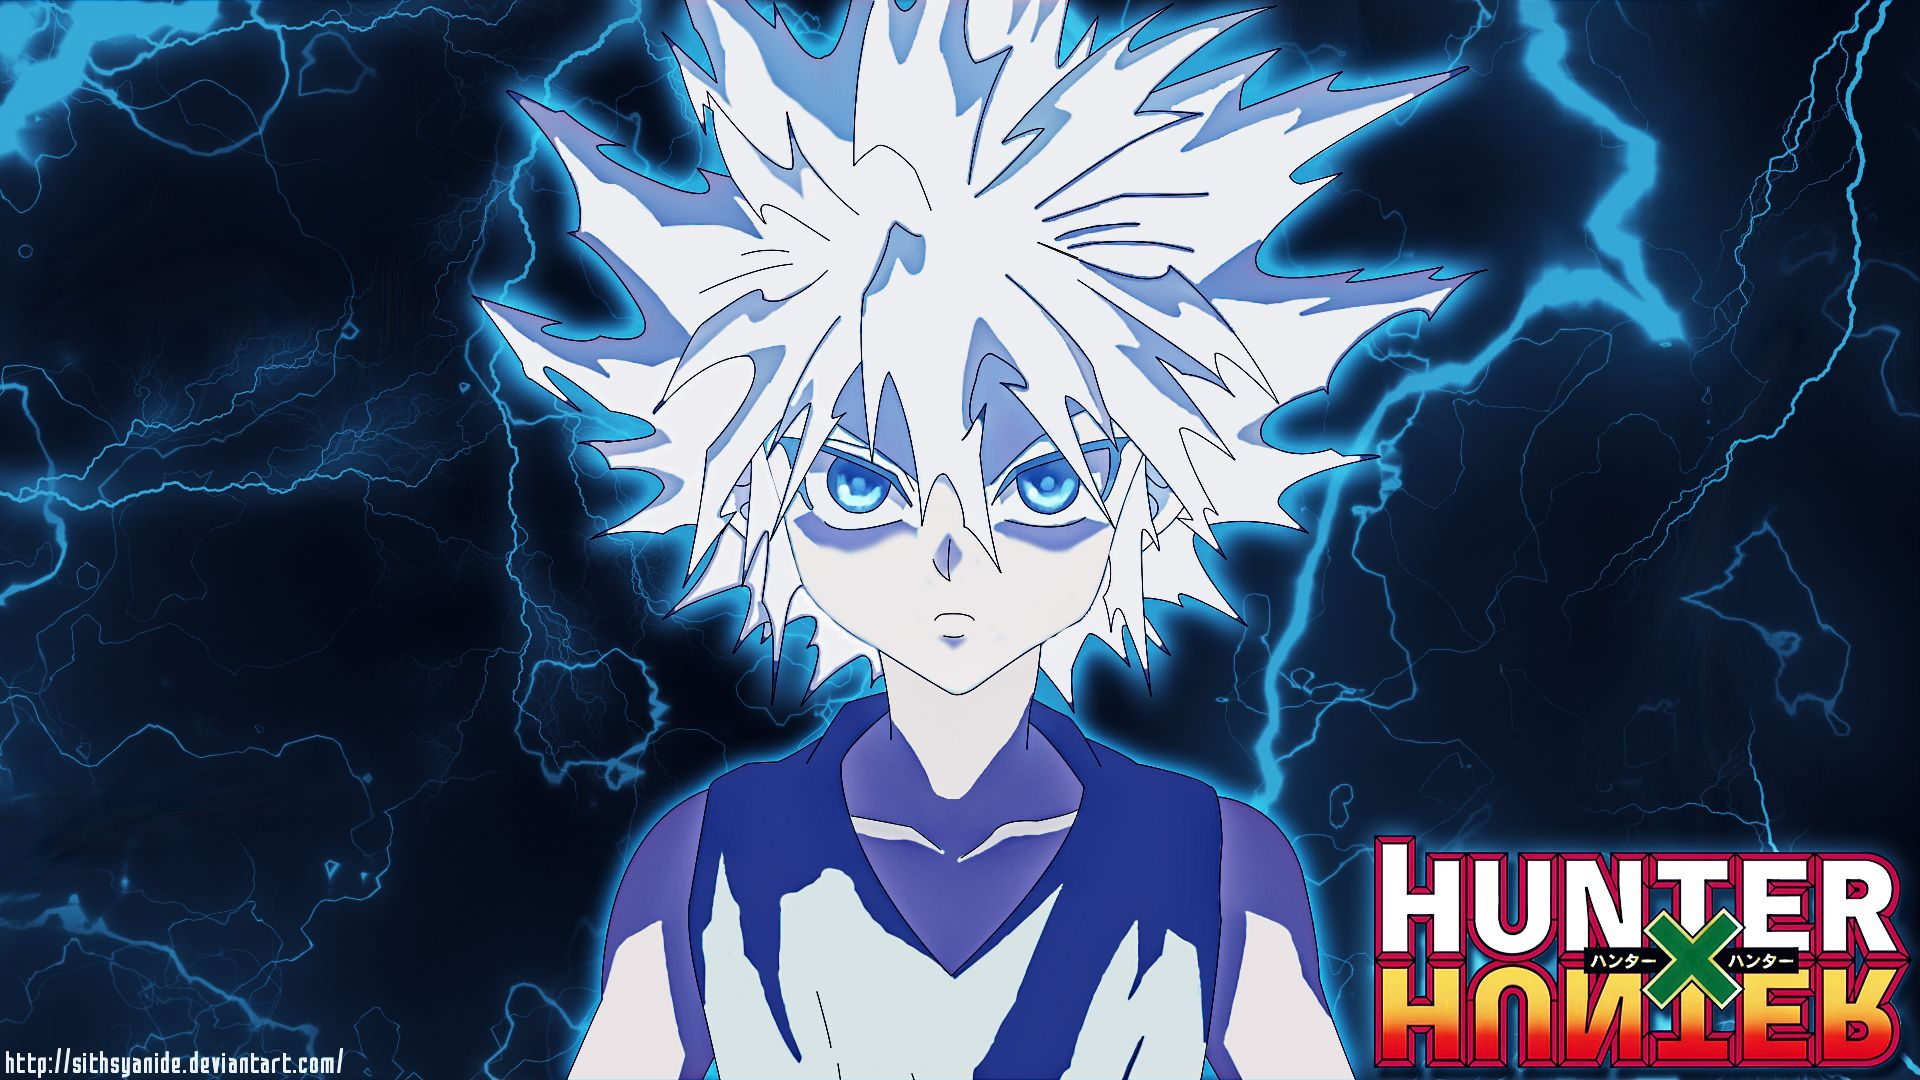 killua_godspeed_by_sithsyanided8jfdsb.jpg (1920×1080